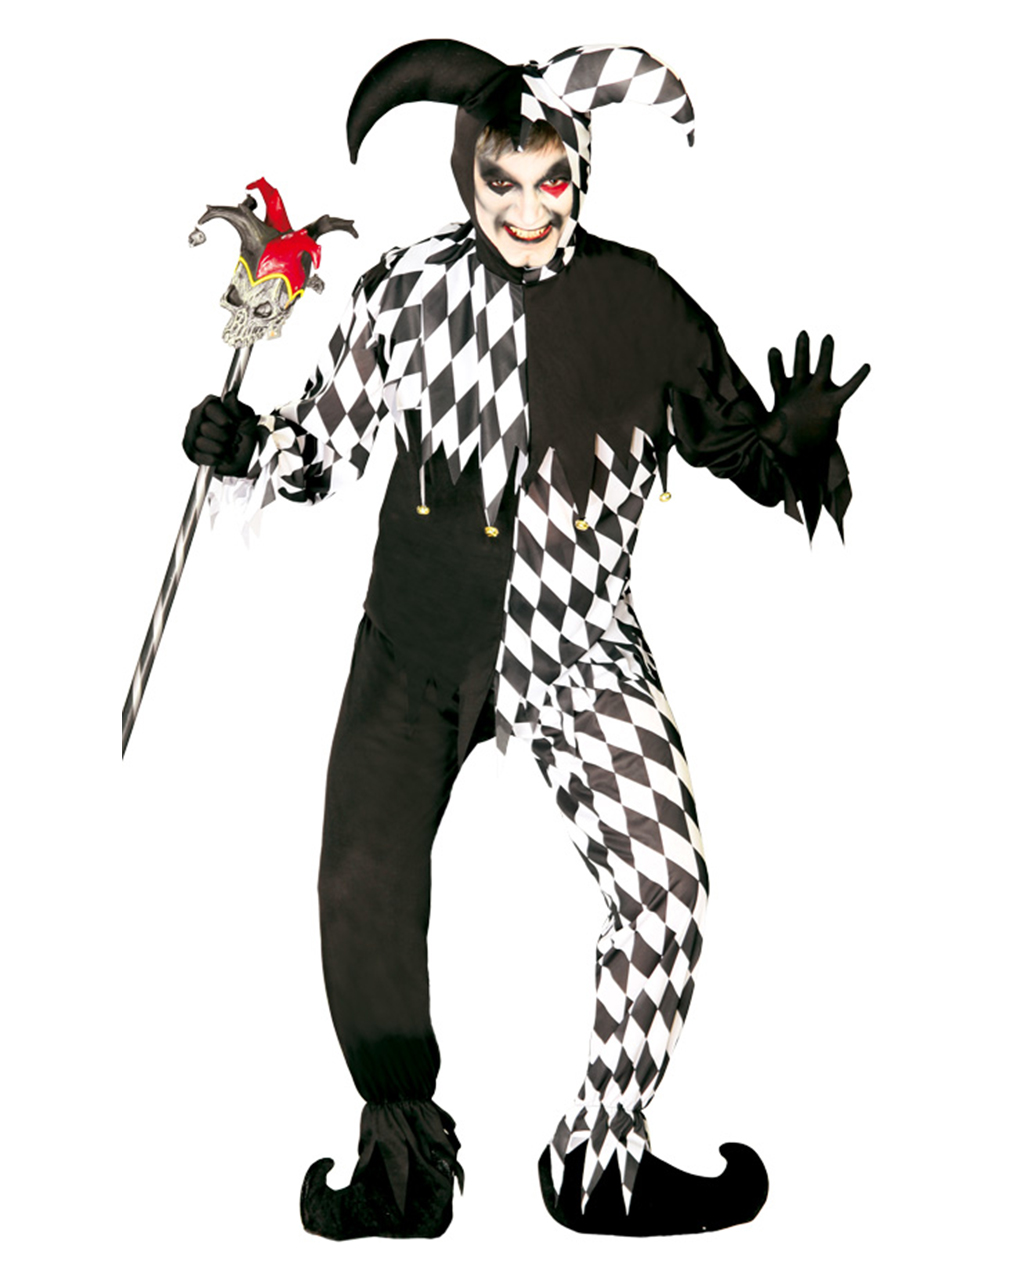 Zombie Harlequin Costume Zombie Harlequin Costume  sc 1 st  Horror-Shop.com & Zombie Harlequin Costume | As an evil court fool costume | horror ...